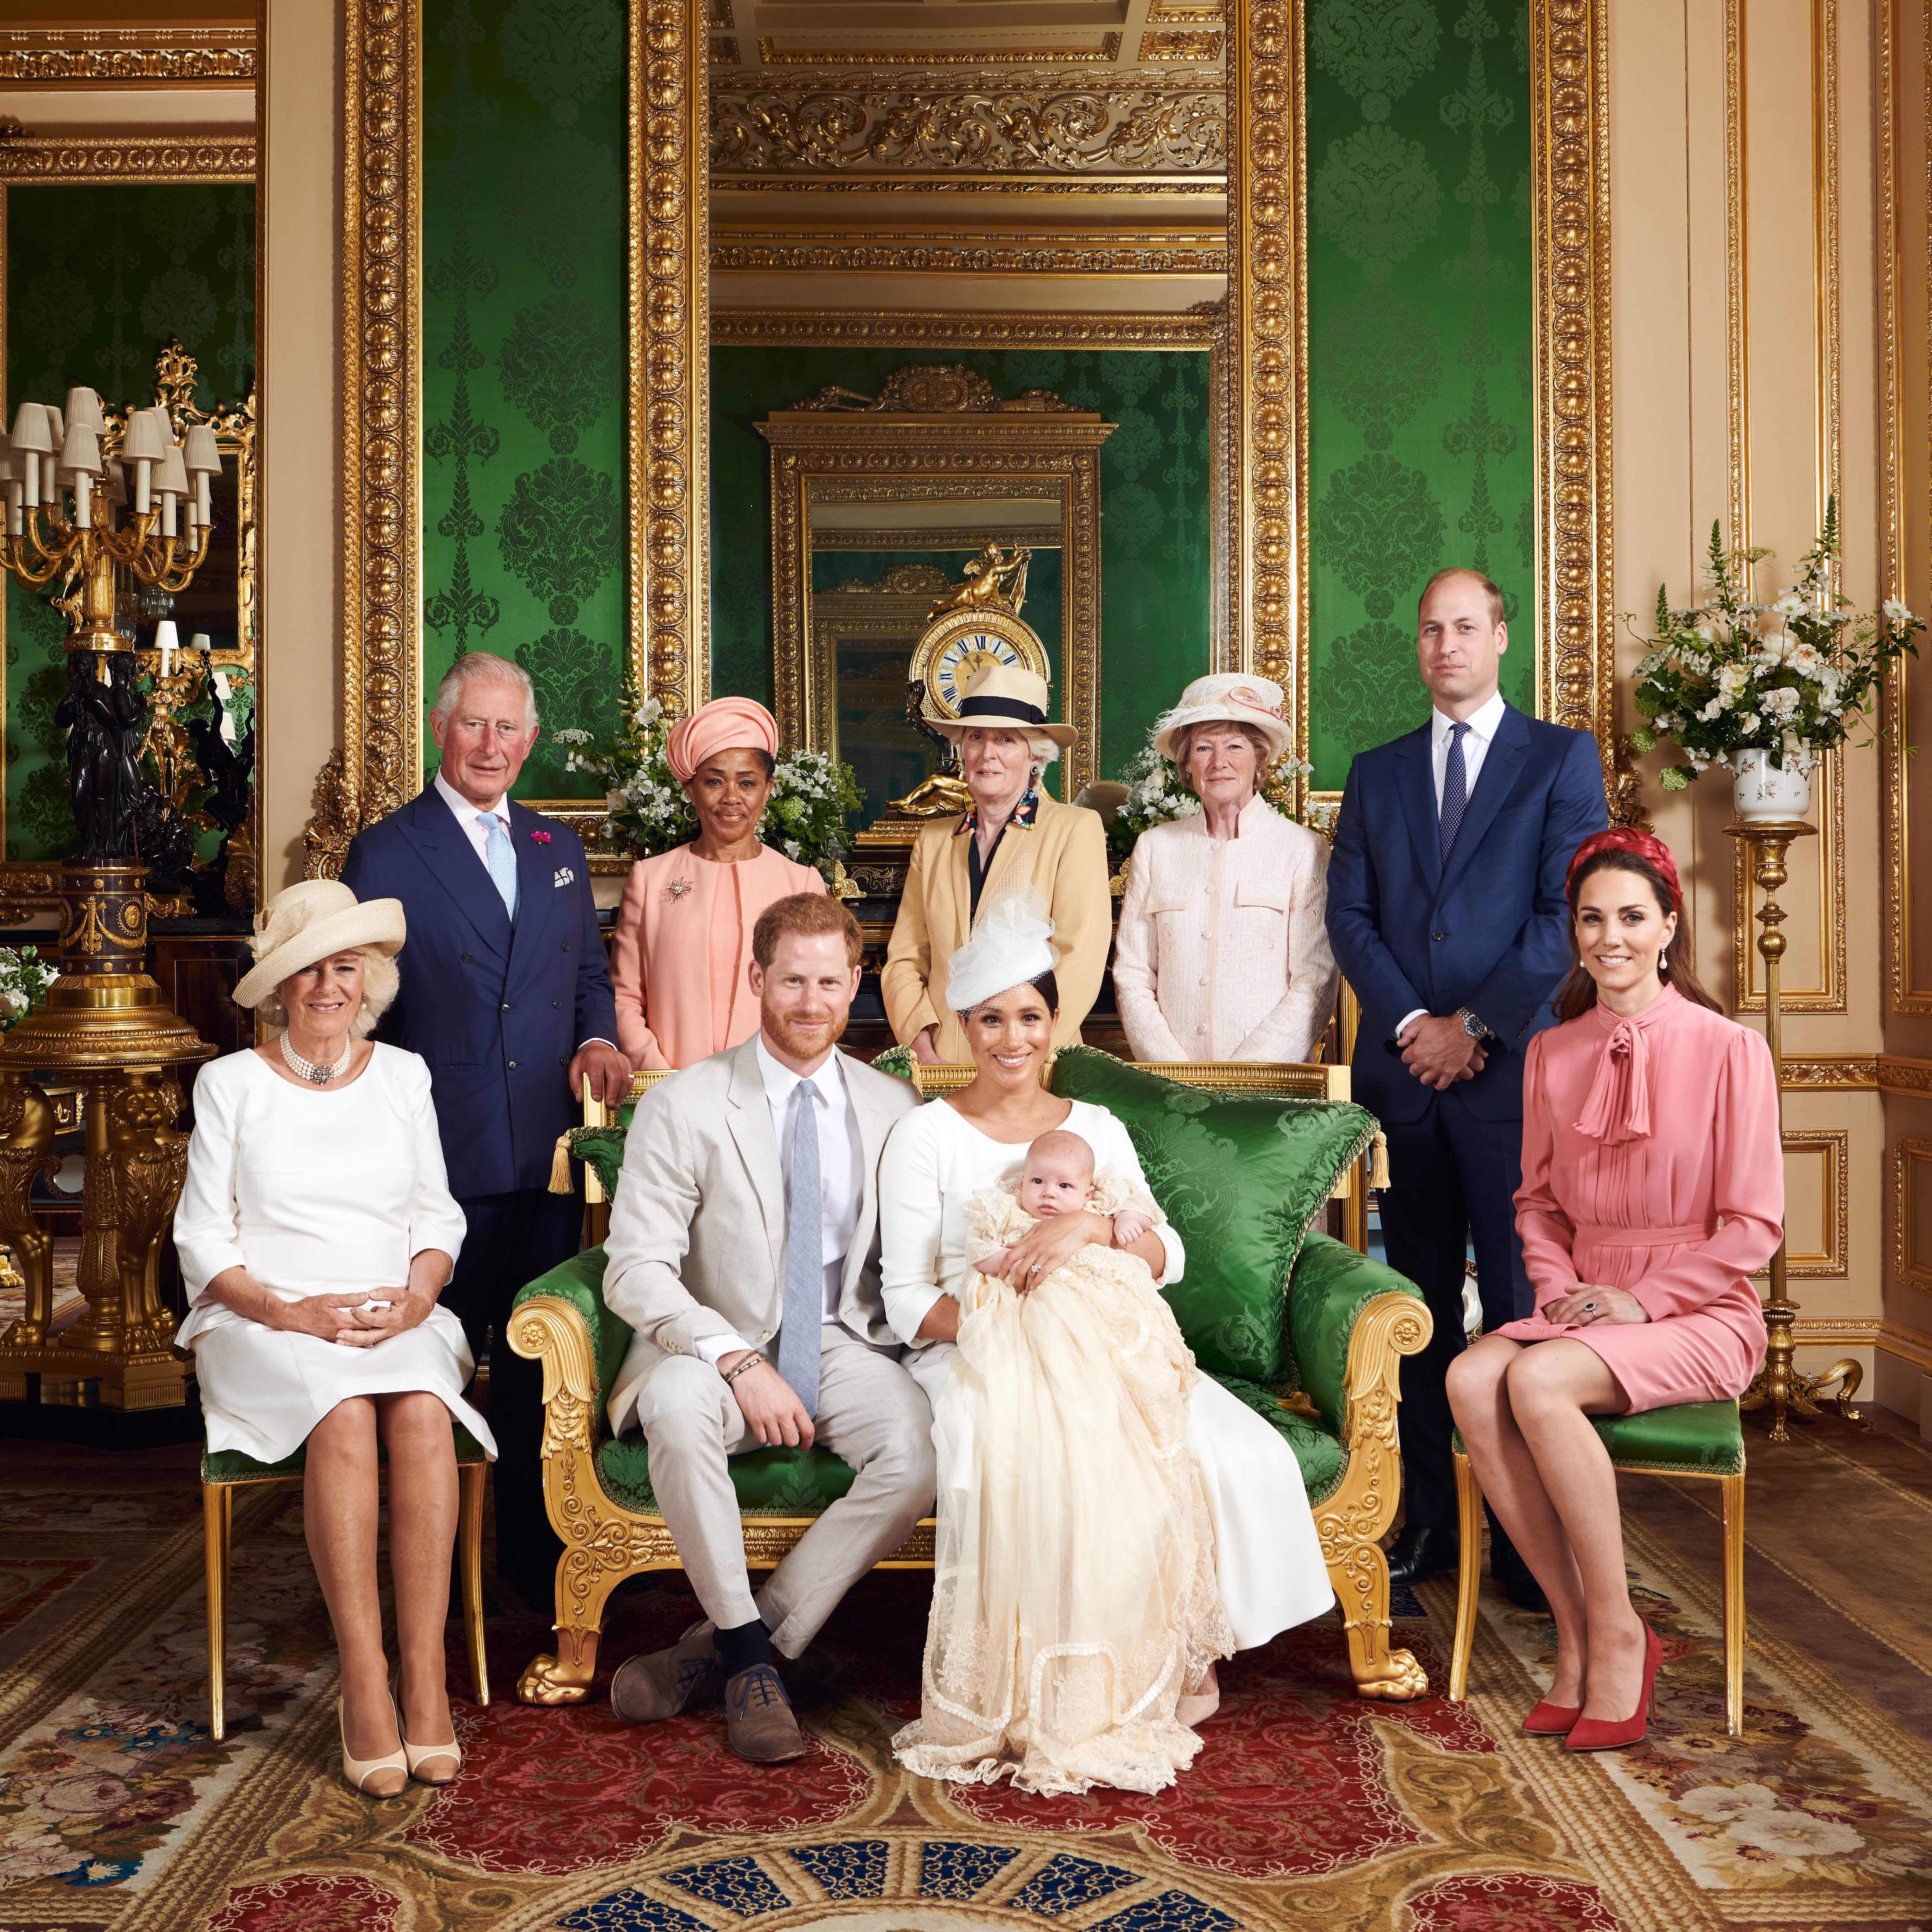 """TOPSHOT - This official handout Christening photograph released by the Duke and Duchess of Sussex shows Britain's Prince Harry, Duke of Sussex (centre left), and his wife Meghan, Duchess of Sussex holding their baby son, Archie Harrison Mountbatten-Windsor flanked by (L-R) Britain's Camilla, Duchess of Cornwall, Britain's Prince Charles, Prince of Wales, Ms Doria Ragland, Lady Jane Fellowes, Lady Sarah McCorquodale, Britain's Prince William, Duke of Cambridge, and Britain's Catherine, Duchess of Cambridge in the Green Drawing Room at Windsor Castle, west of London on July 6, 2019. - Prince Harry and his wife Meghan had their baby son Archie christened on Saturday at a private ceremony. (Photo by Chris ALLERTON / SUSSEXROYAL / AFP) / XGTY / RESTRICTED TO EDITORIAL USE - MANDATORY CREDIT """"AFP PHOTO / SUSSEXROYAL / CHRIS ALLERTON"""" - NO MARKETING NO ADVERTISING CAMPAIGNS - NO COMMERCIAL USE - NO THIRD PARTY SALES - RESTRICTED TO SUBSCRIPTION USE - NO CROPPING OR MODIFICATION - NOT FOR USE AFTER DECEMBER 31, 2019 - DISTRIBUTED AS A SERVICE TO CLIENTS /         (Photo credit should read CHRIS ALLERTON/AFP/Getty Images)"""